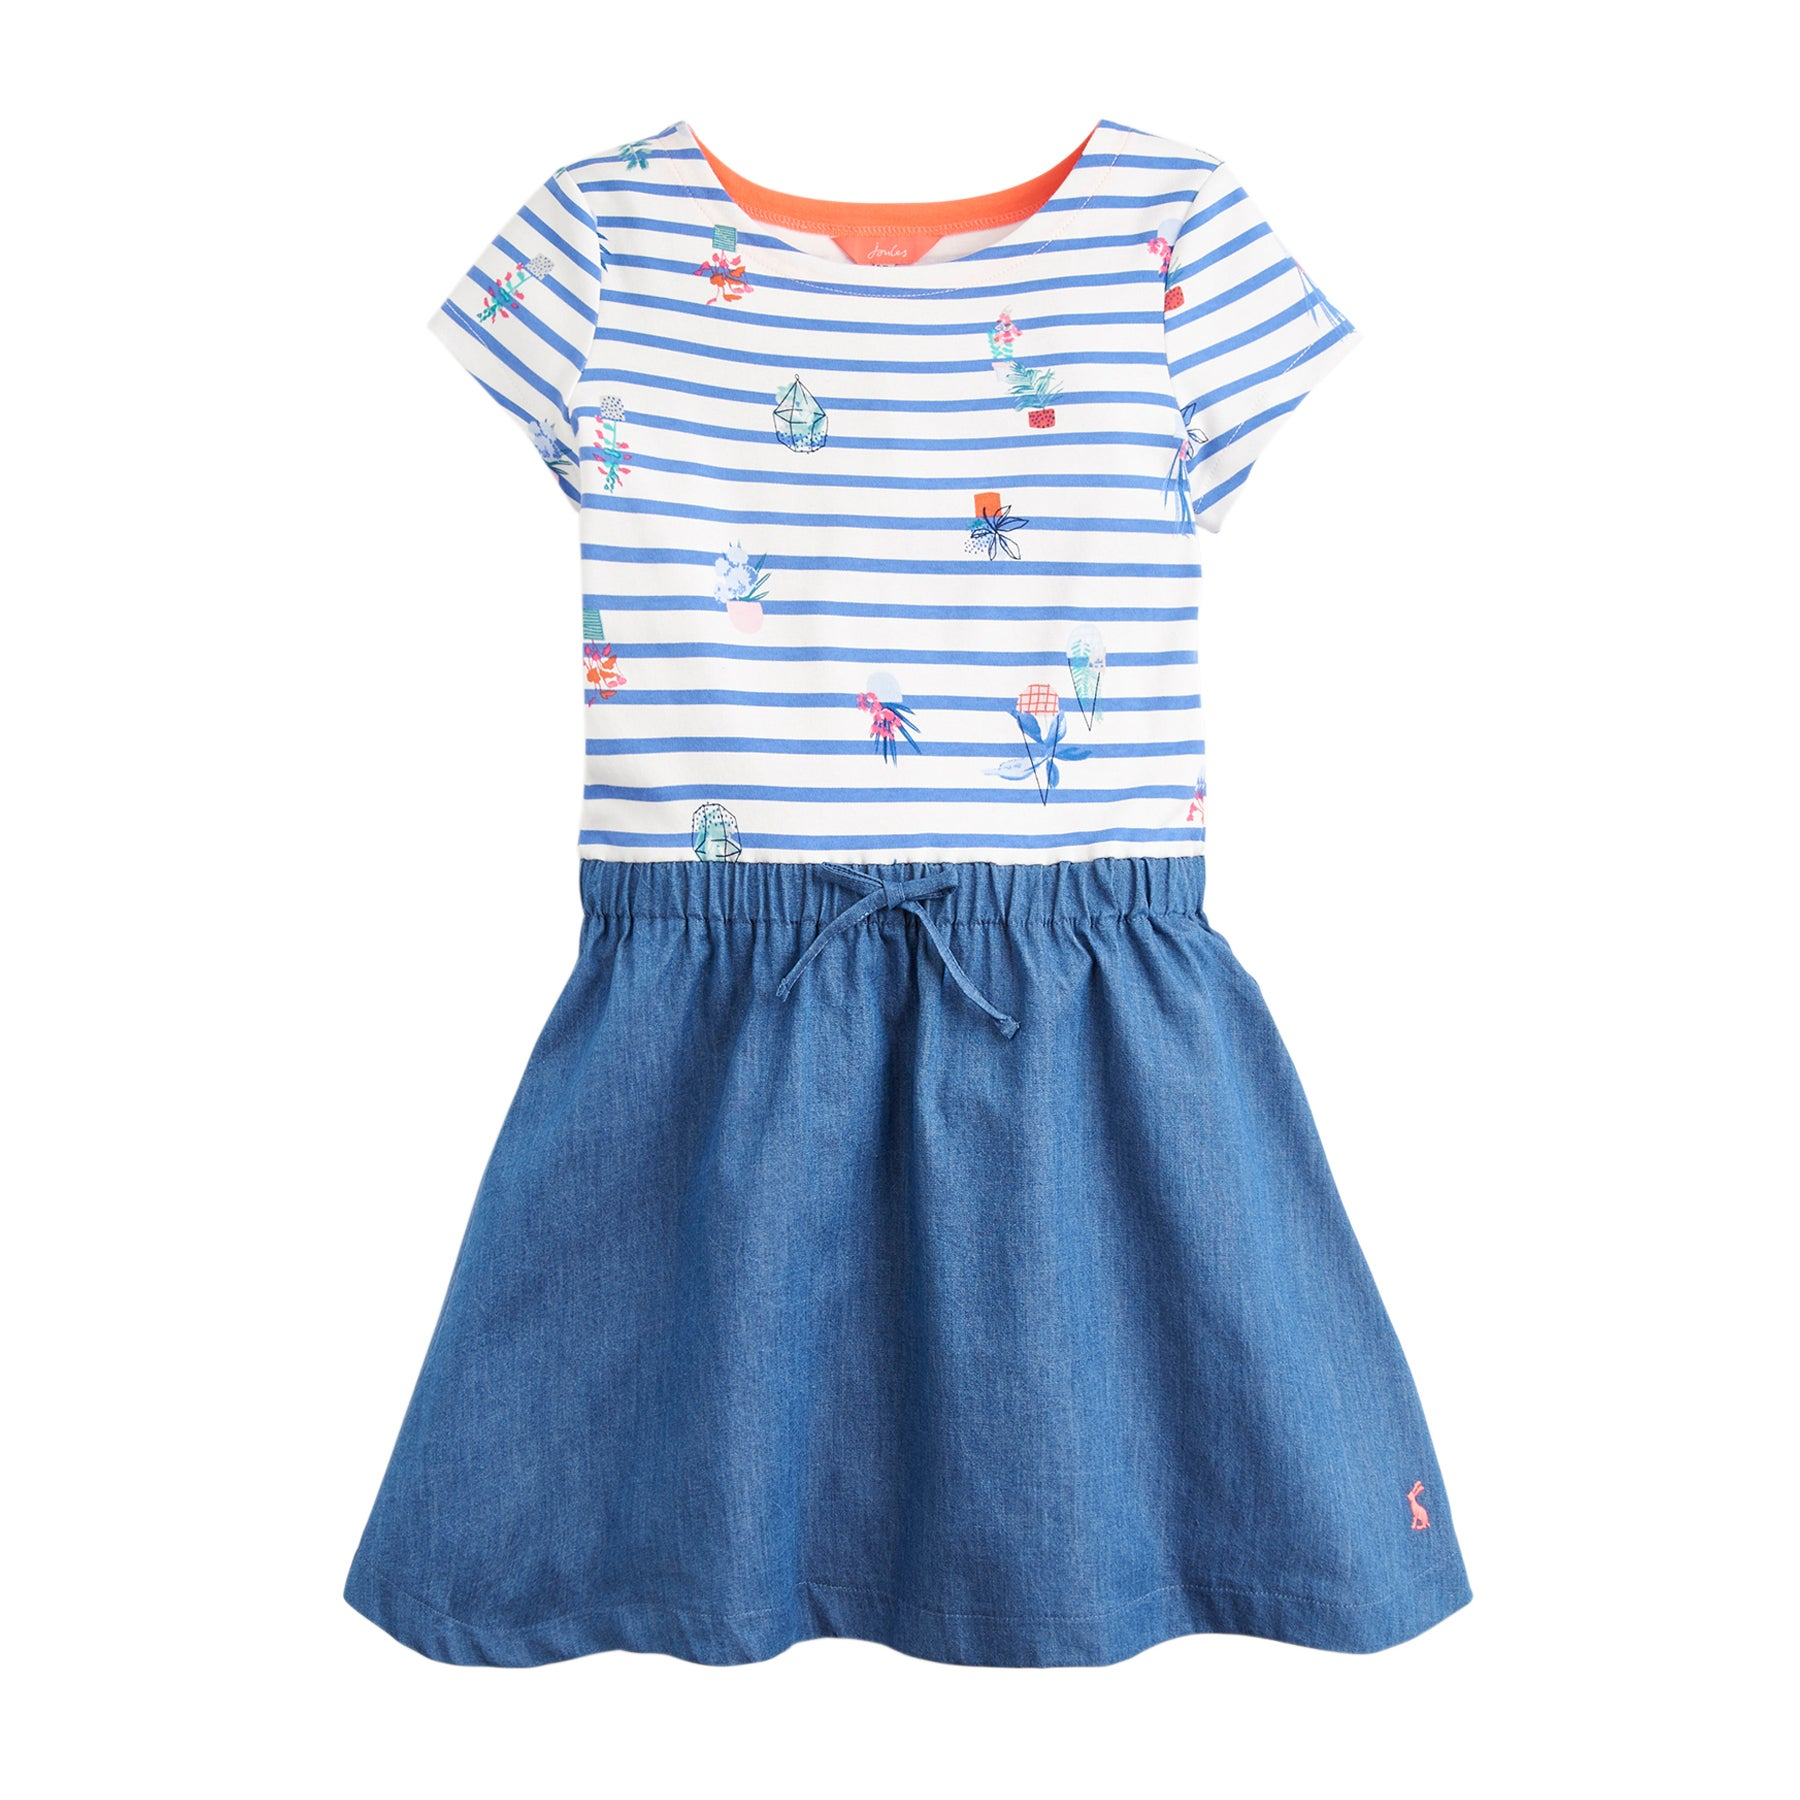 Joules Karolina Girls Dress - Cream Blue Plant Stripe